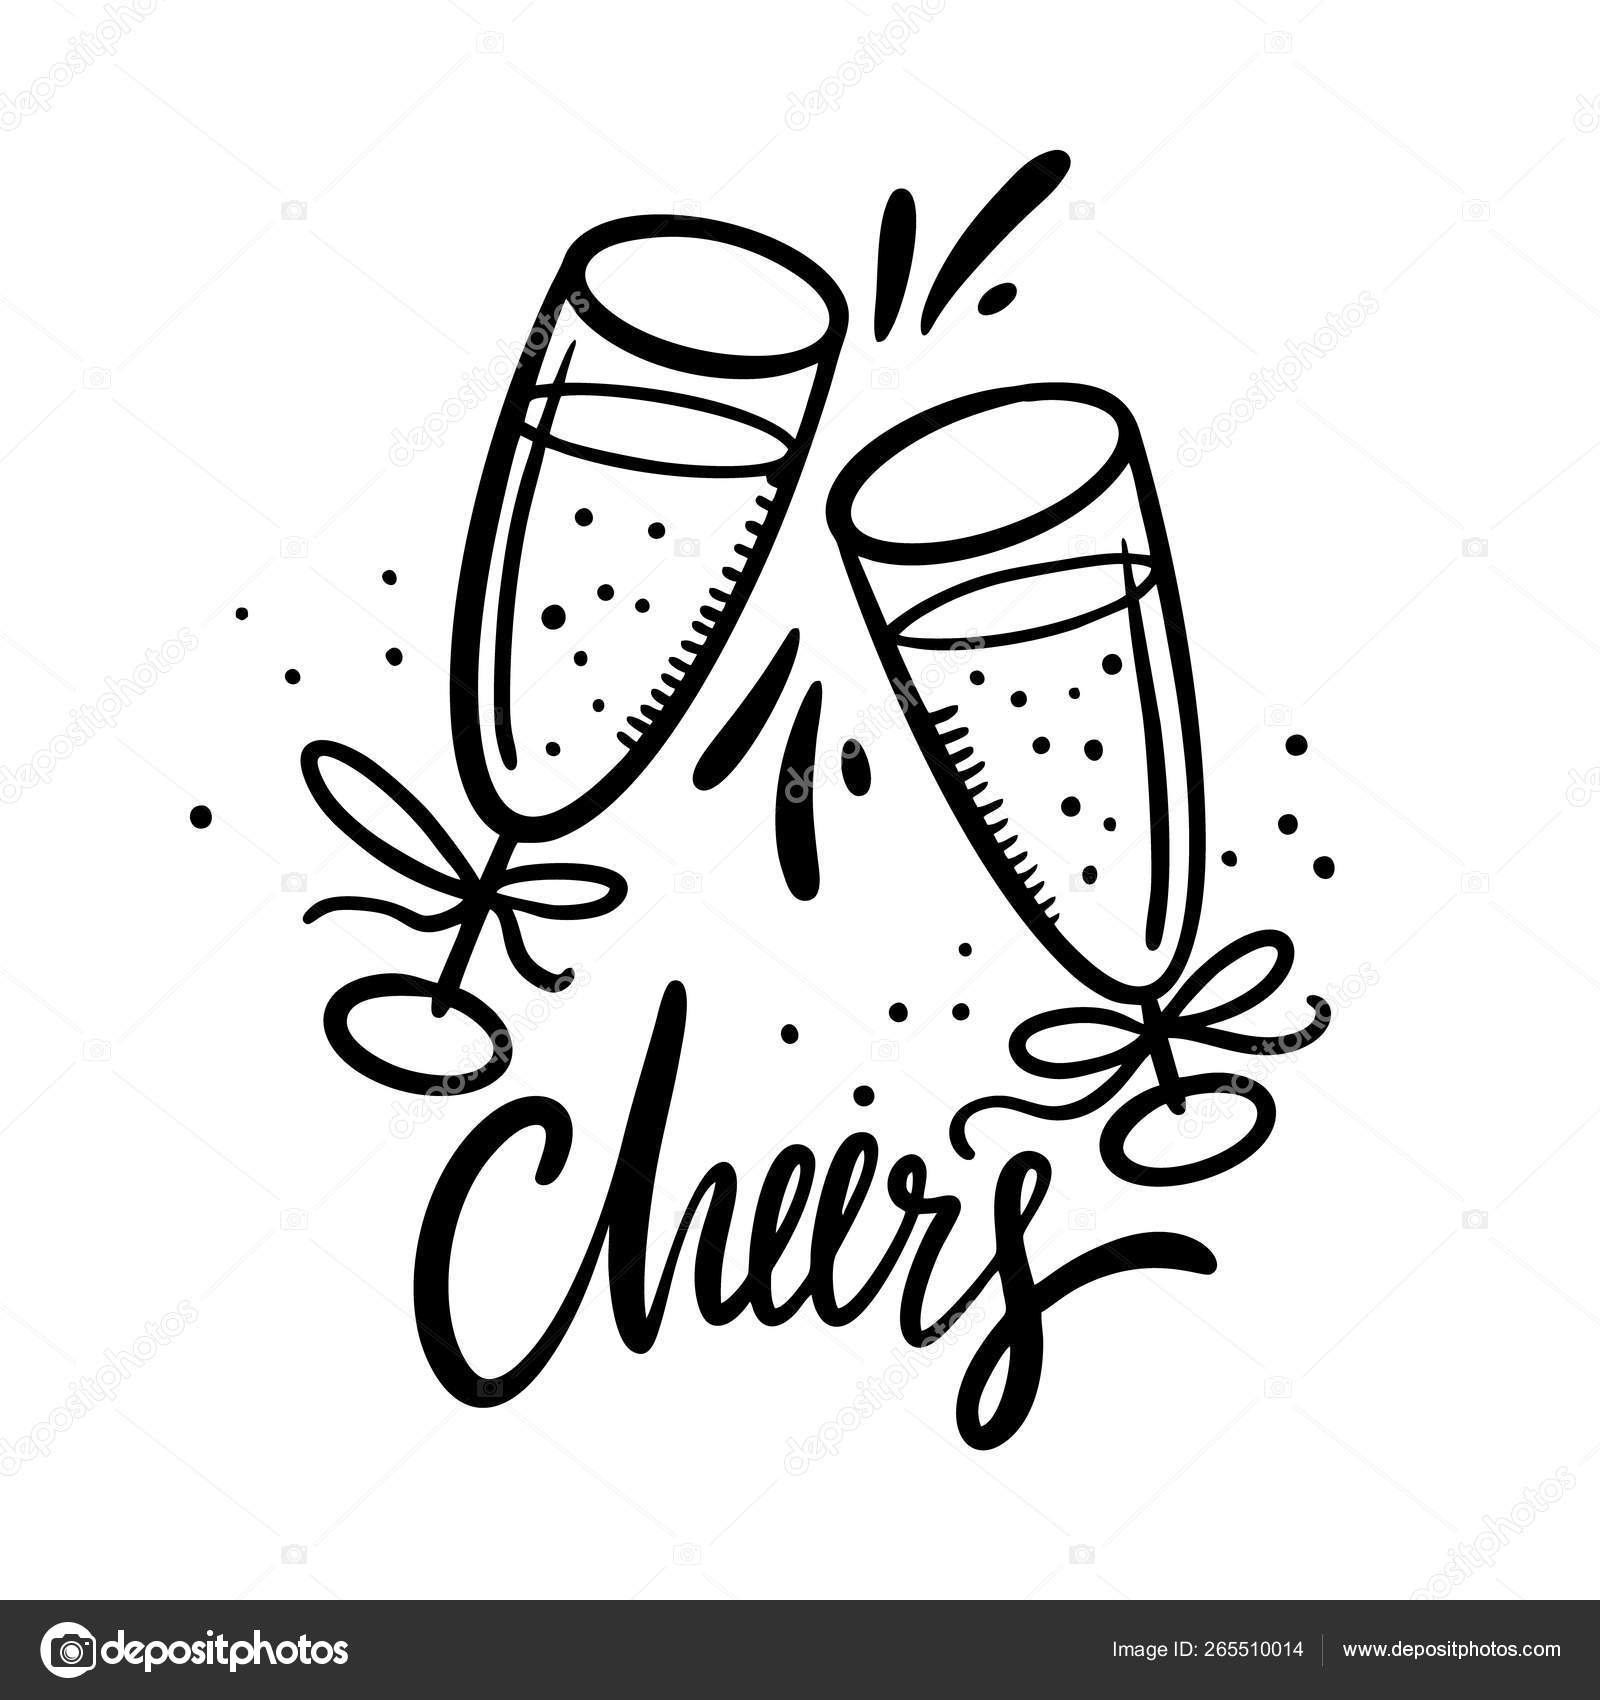 Cheers Lettering With Hand Drawn Wine Glasses Cartoon